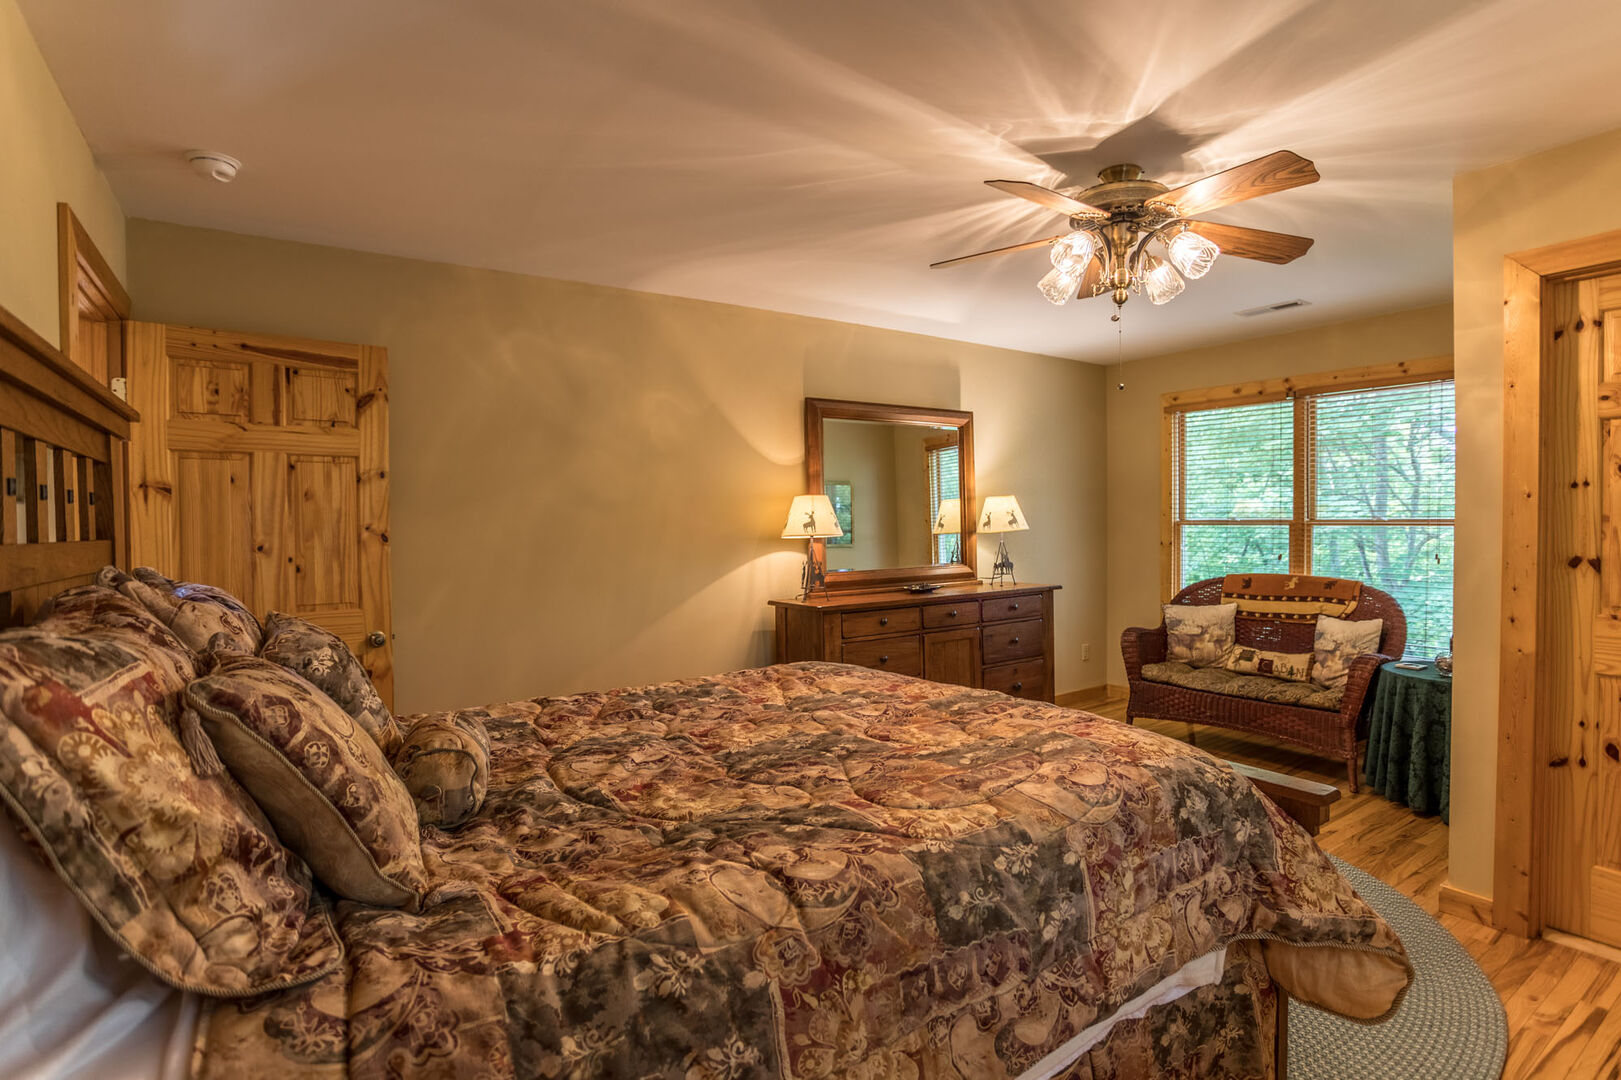 Third bedroom has beautiful views and additional seating space